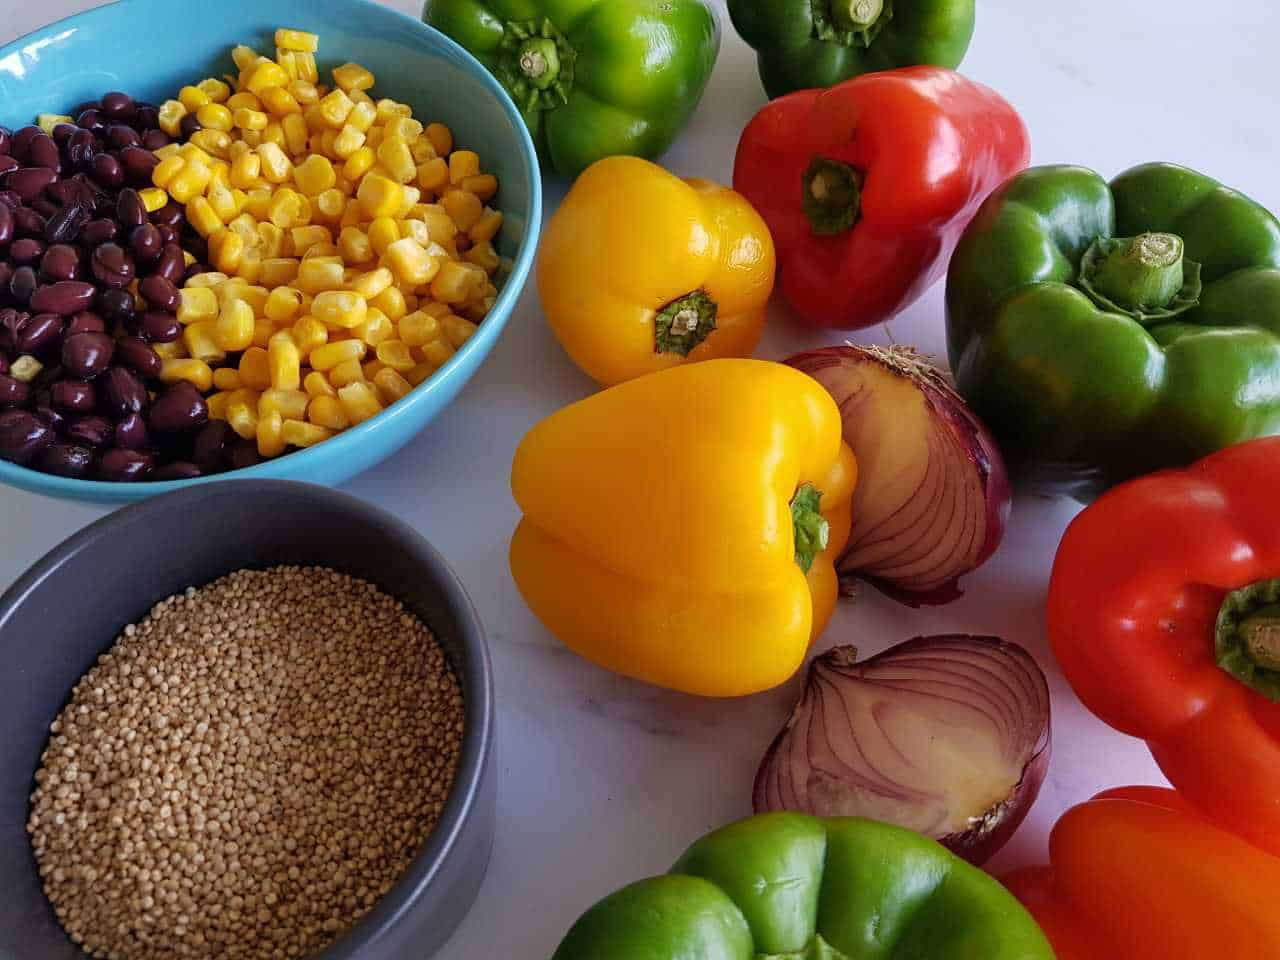 All the ingredients for stuffed peppers with quinoa and black beans laid out on a marble table.